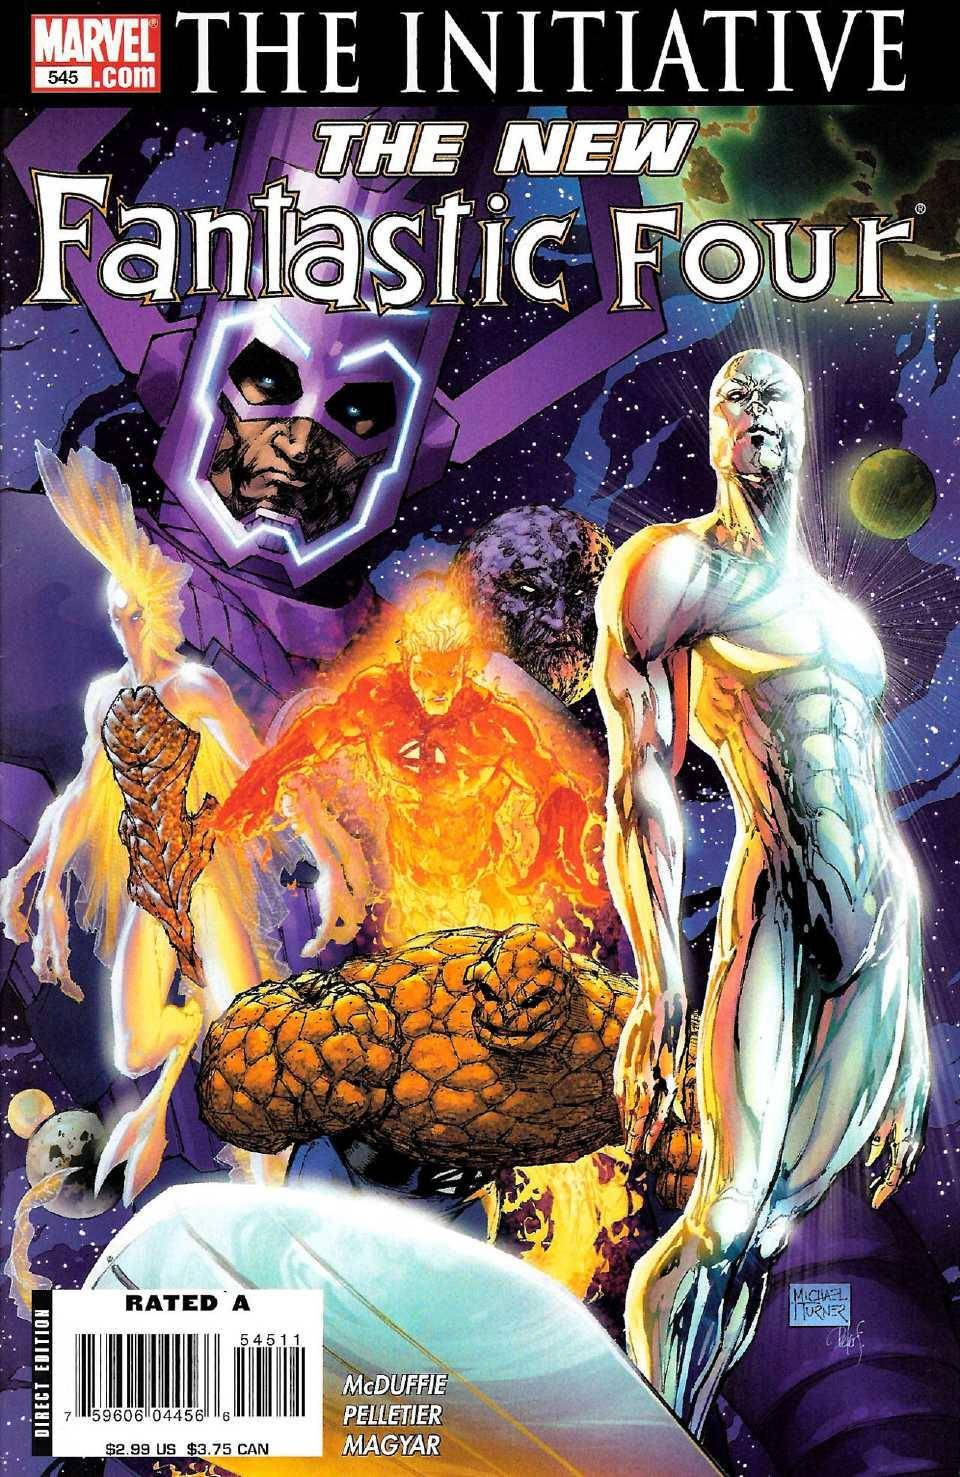 A Blasty From The Pasty [425 of 558] 154 The Initiative - Fantastic Four V1 545